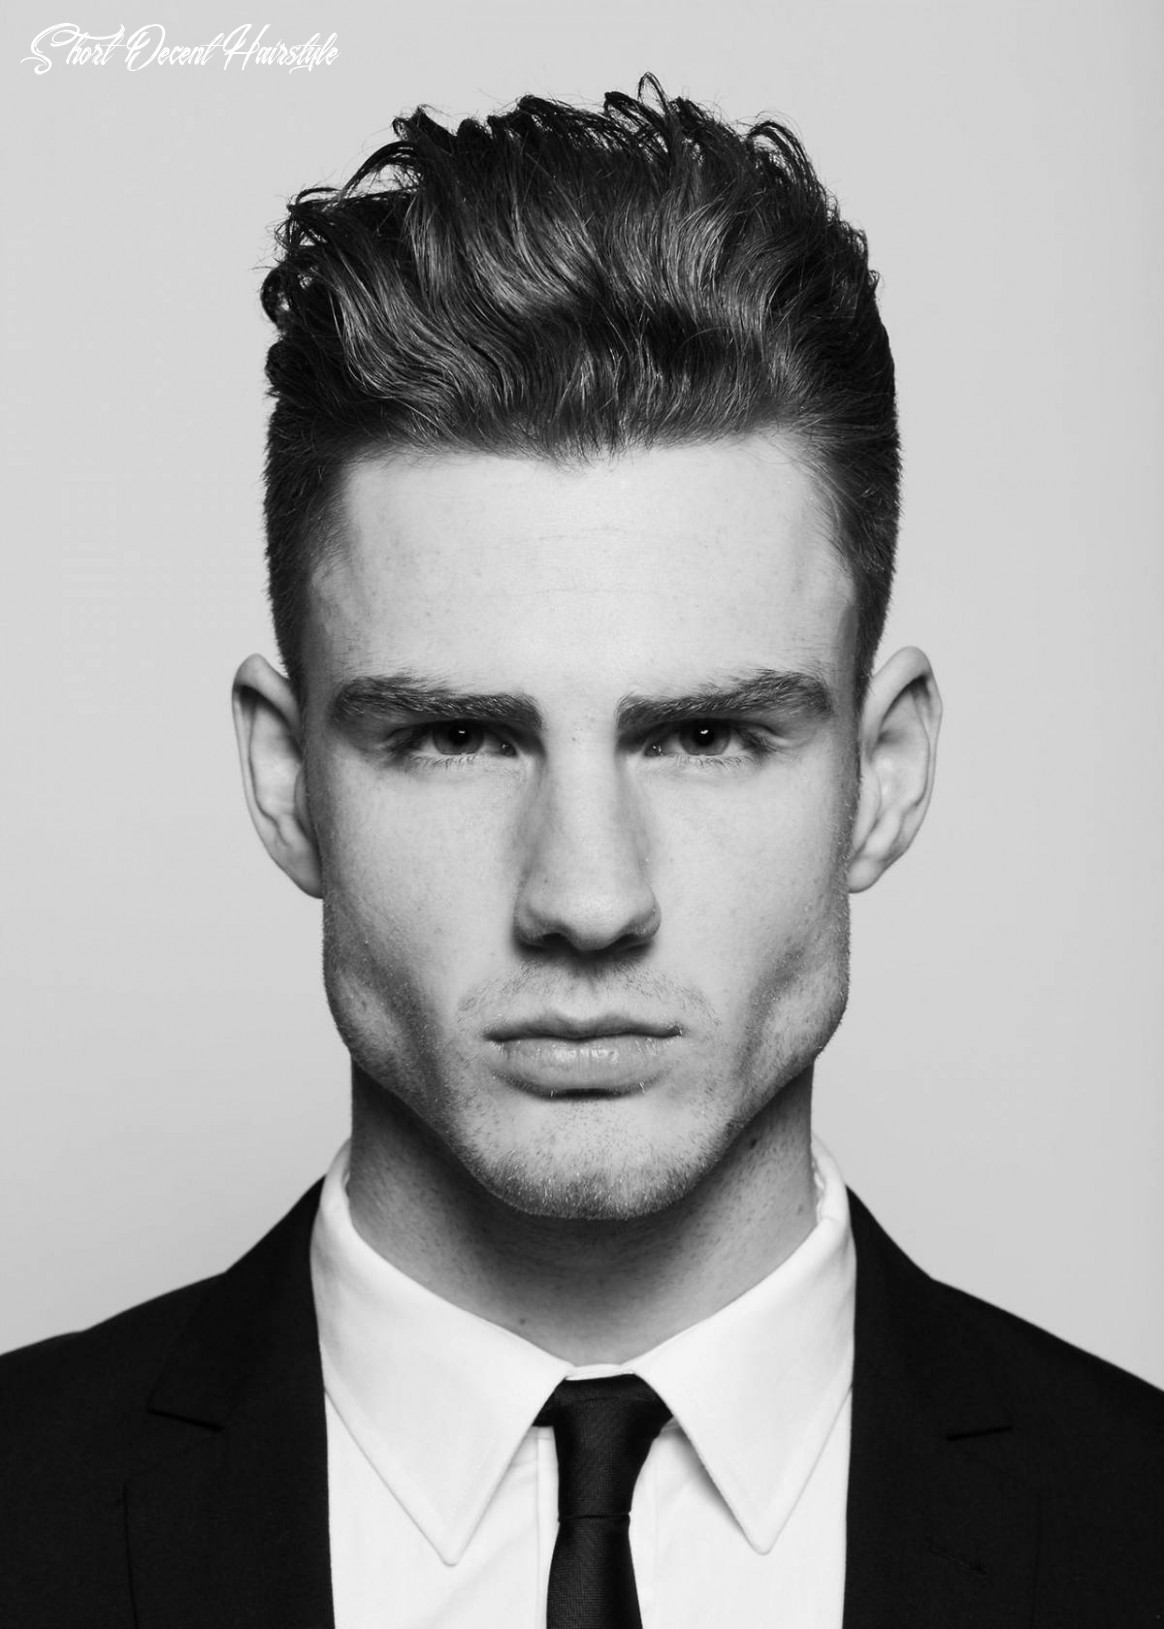 11 Best Stylish Short Hairstyles For Men [With Photos & Tips]